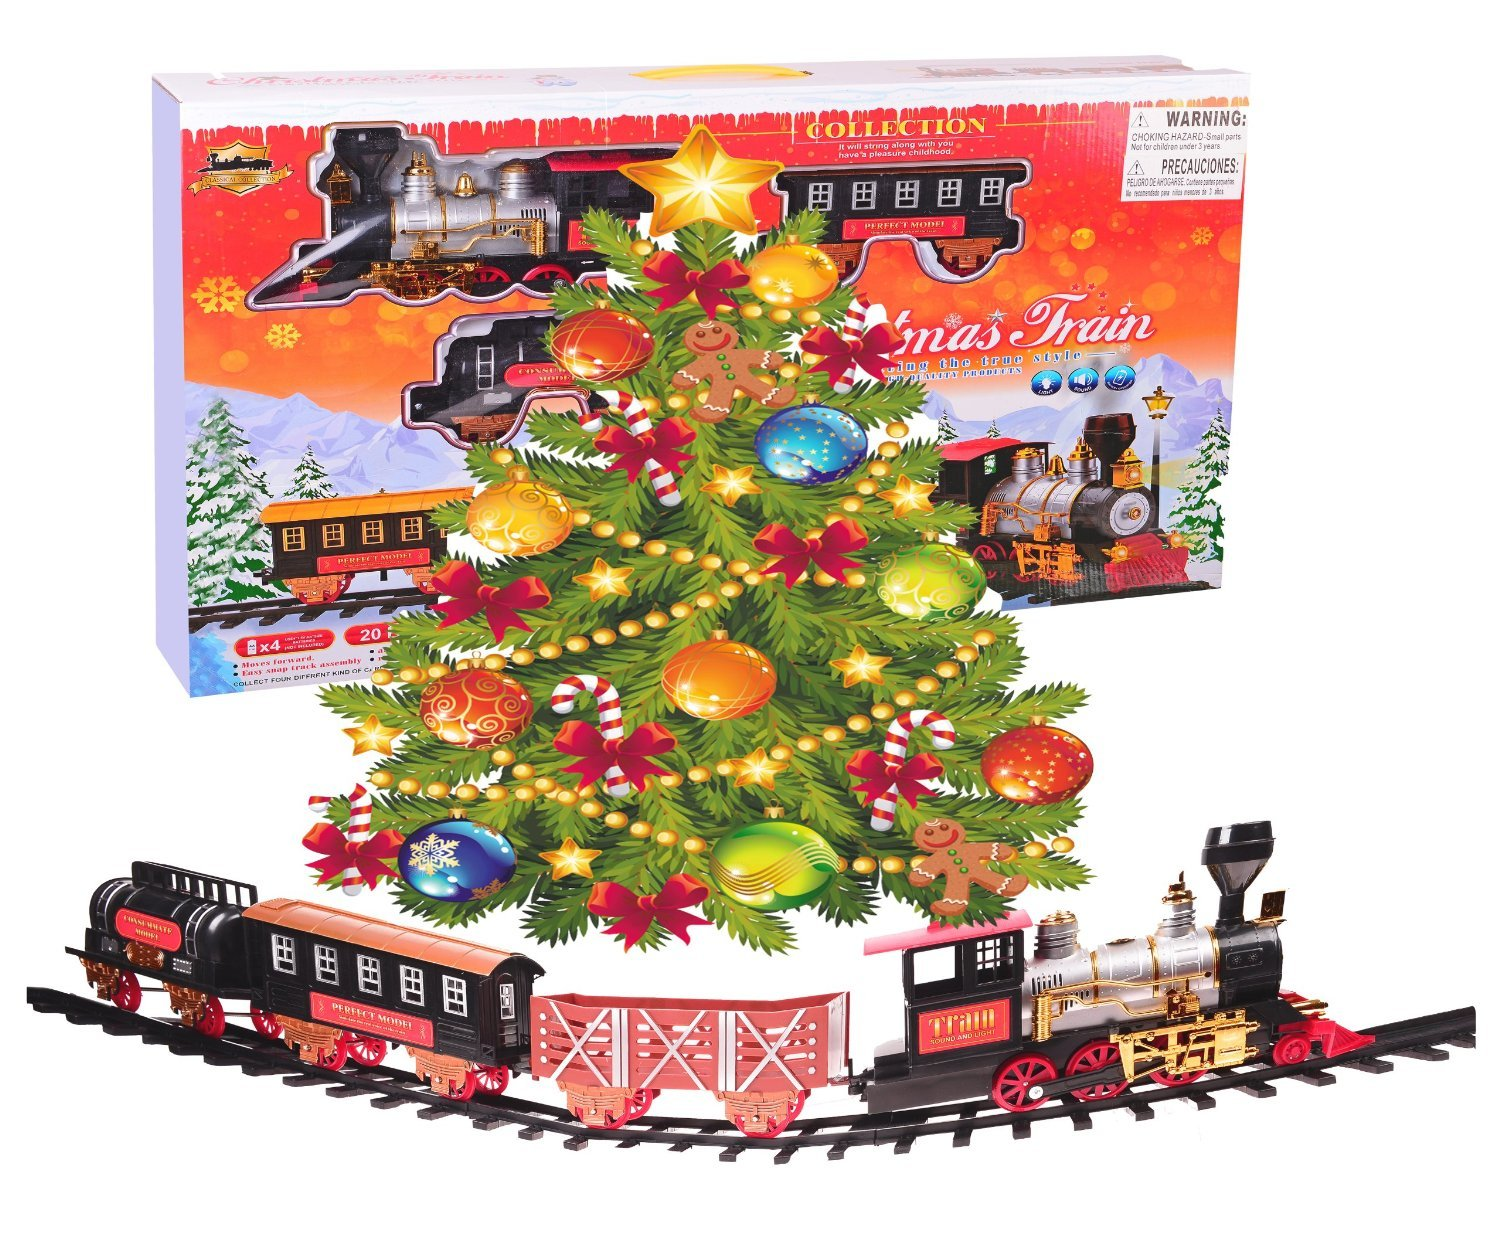 amazoncom northern express christmas train set around the tree holiday santa train set large scale 20pcs train model toys games